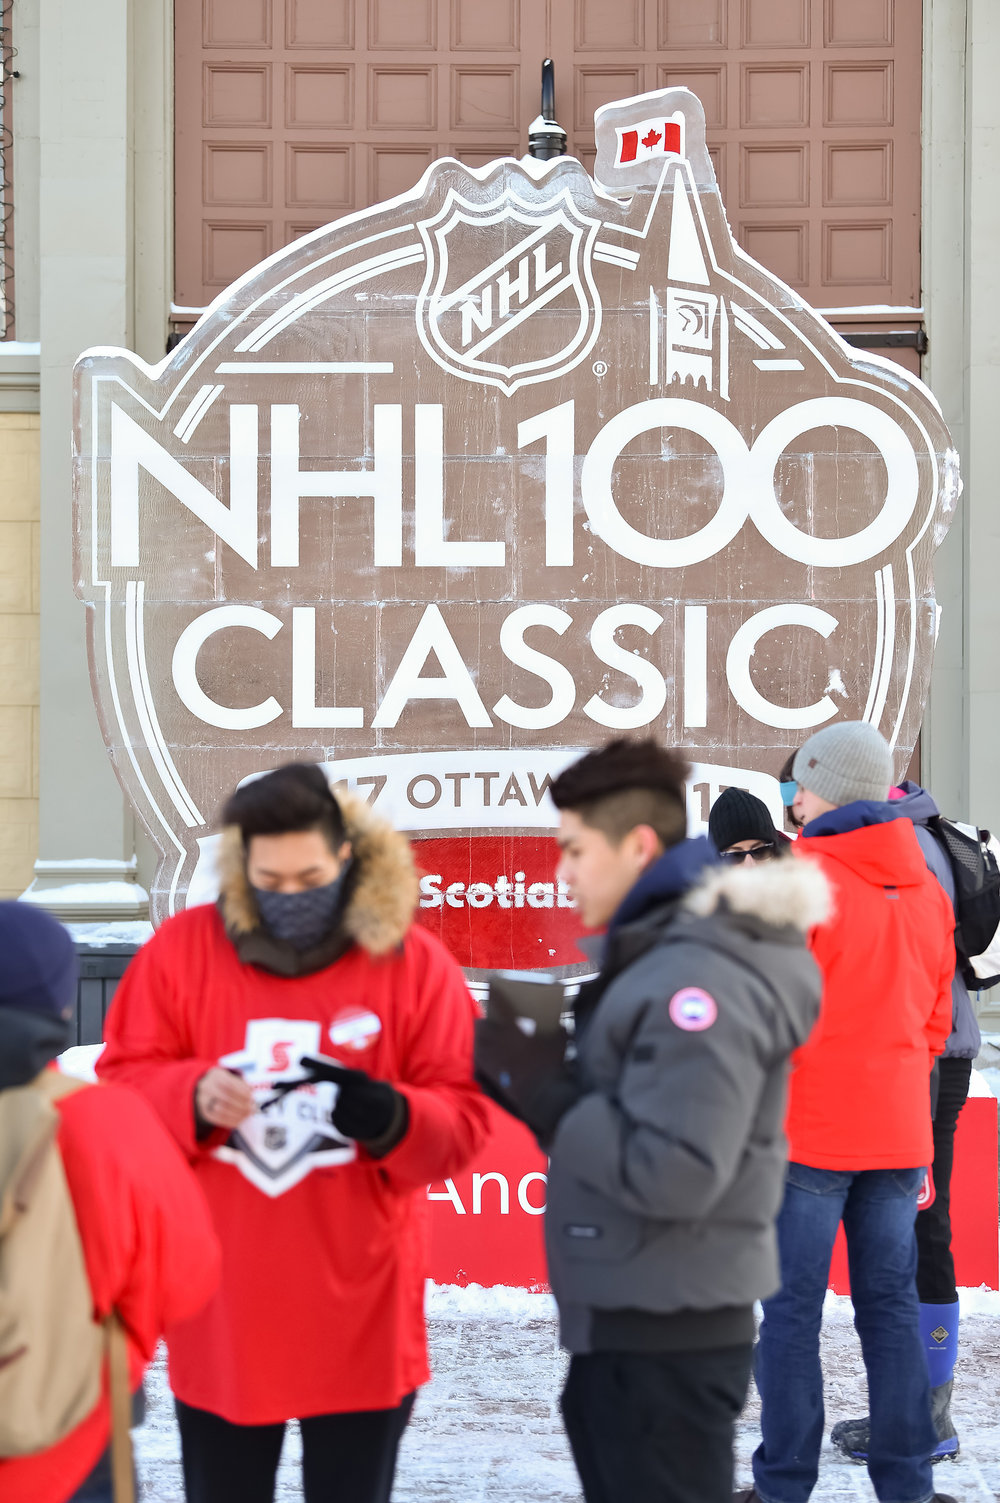 Ottawa_NHL100_Design_3.jpg